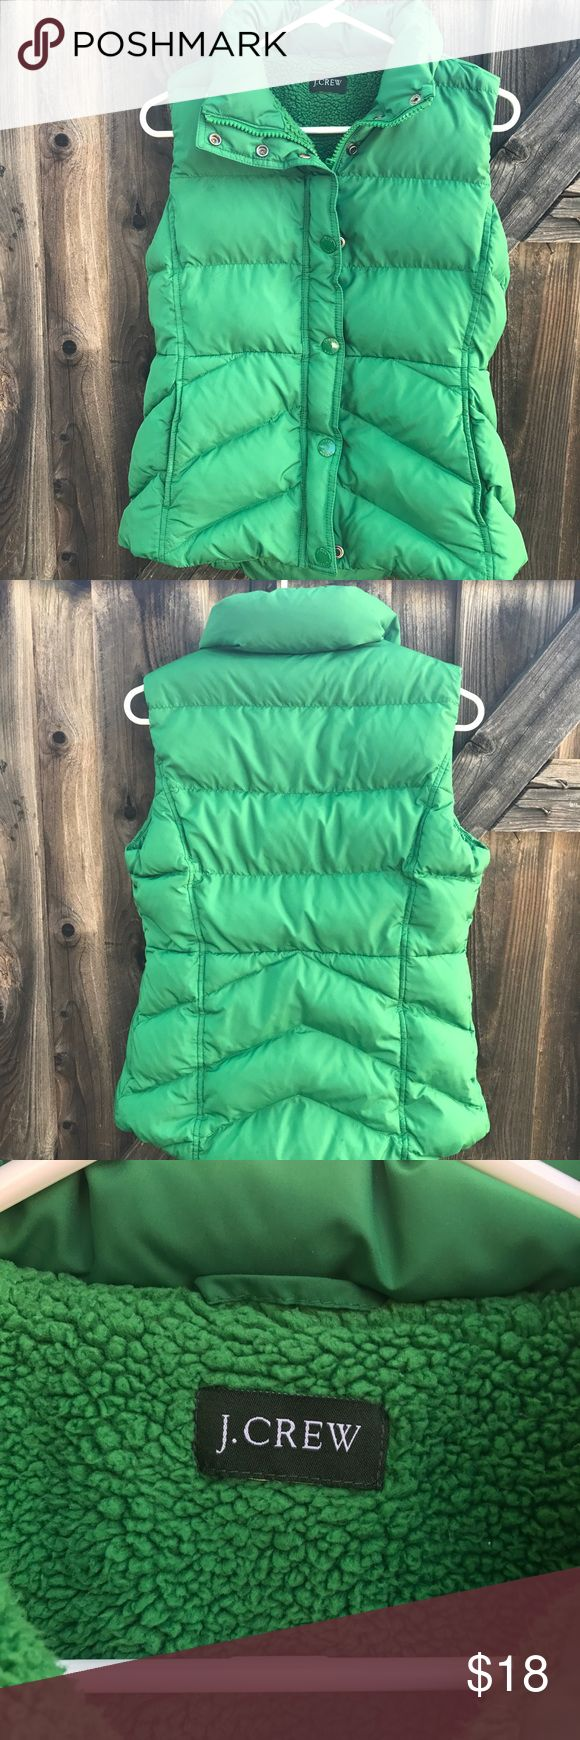 Jcrew women's vest Puffer Jcrew women's Puffer vest Size small Green with fleece lining  Made of 100% Polyester  Fill 80% down 20% water fowl feather No rips small stain on collar shown in picture Length 24 Armpit to armpit 19 Shoulder to shoulder 13.5 J.crew Jackets & Coats Vests